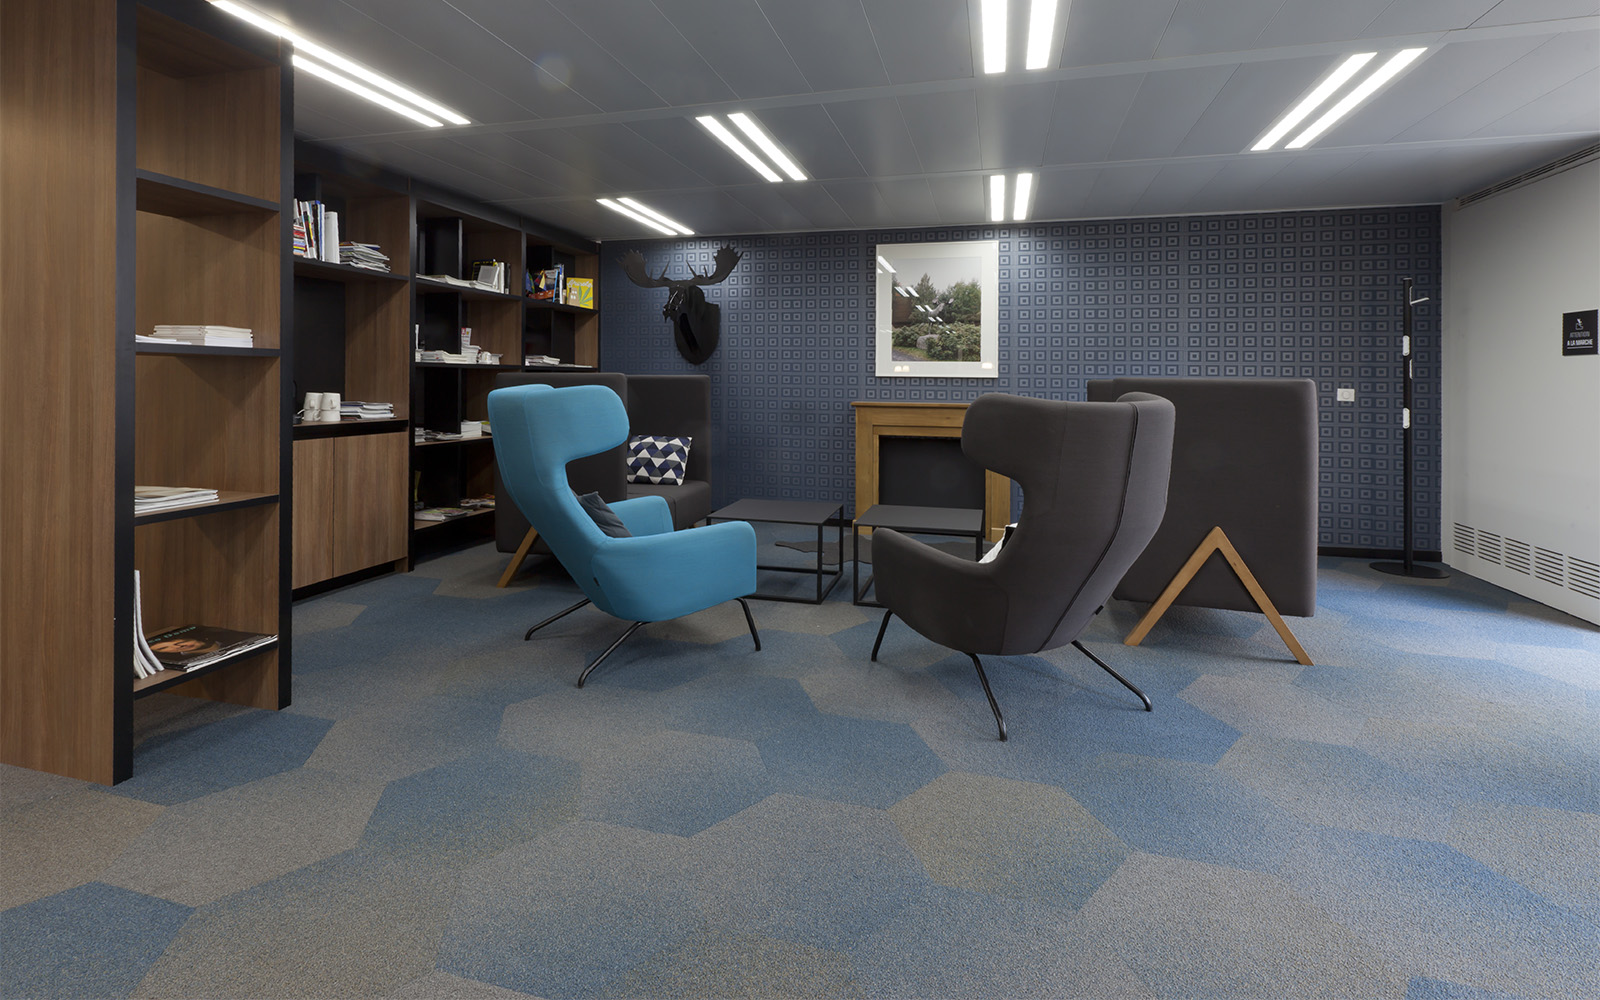 faded blue and beige hexagon carpet tiles by ege in an office setting